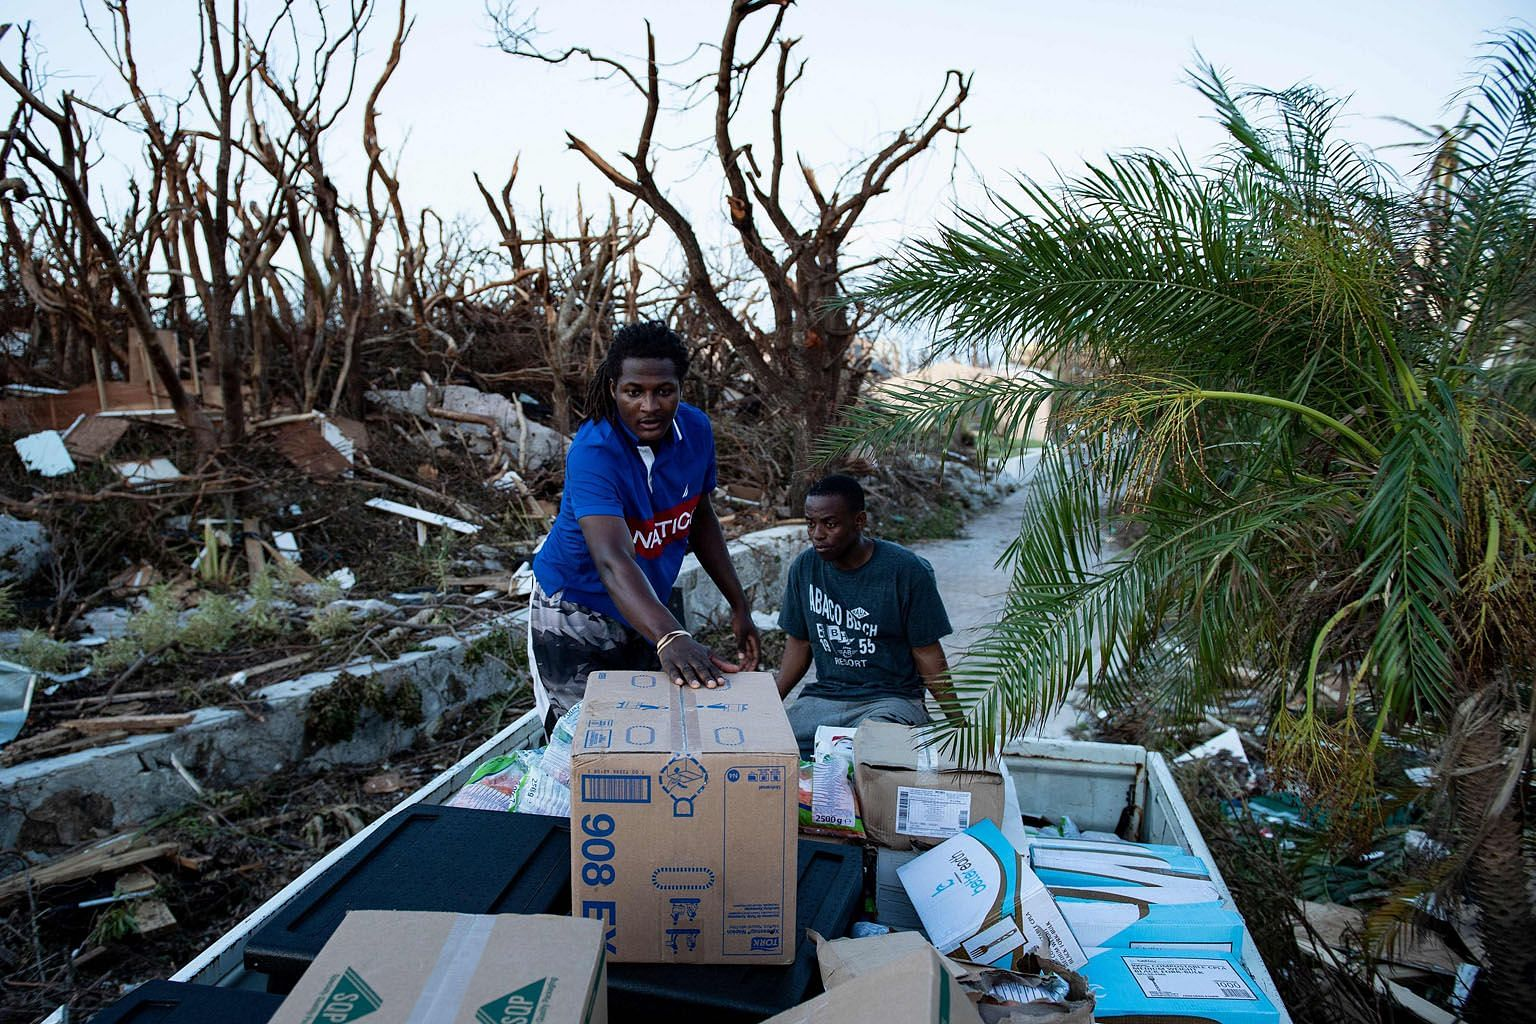 Above: Volunteers with World Central Kitchen transporting food supplies for survivors of Hurricane Dorian on Thursday in Marsh Harbour, Great Abaco, the Bahamas. Below: Residents of a caravan park in Emerald Isle, North Carolina, surveying the damage